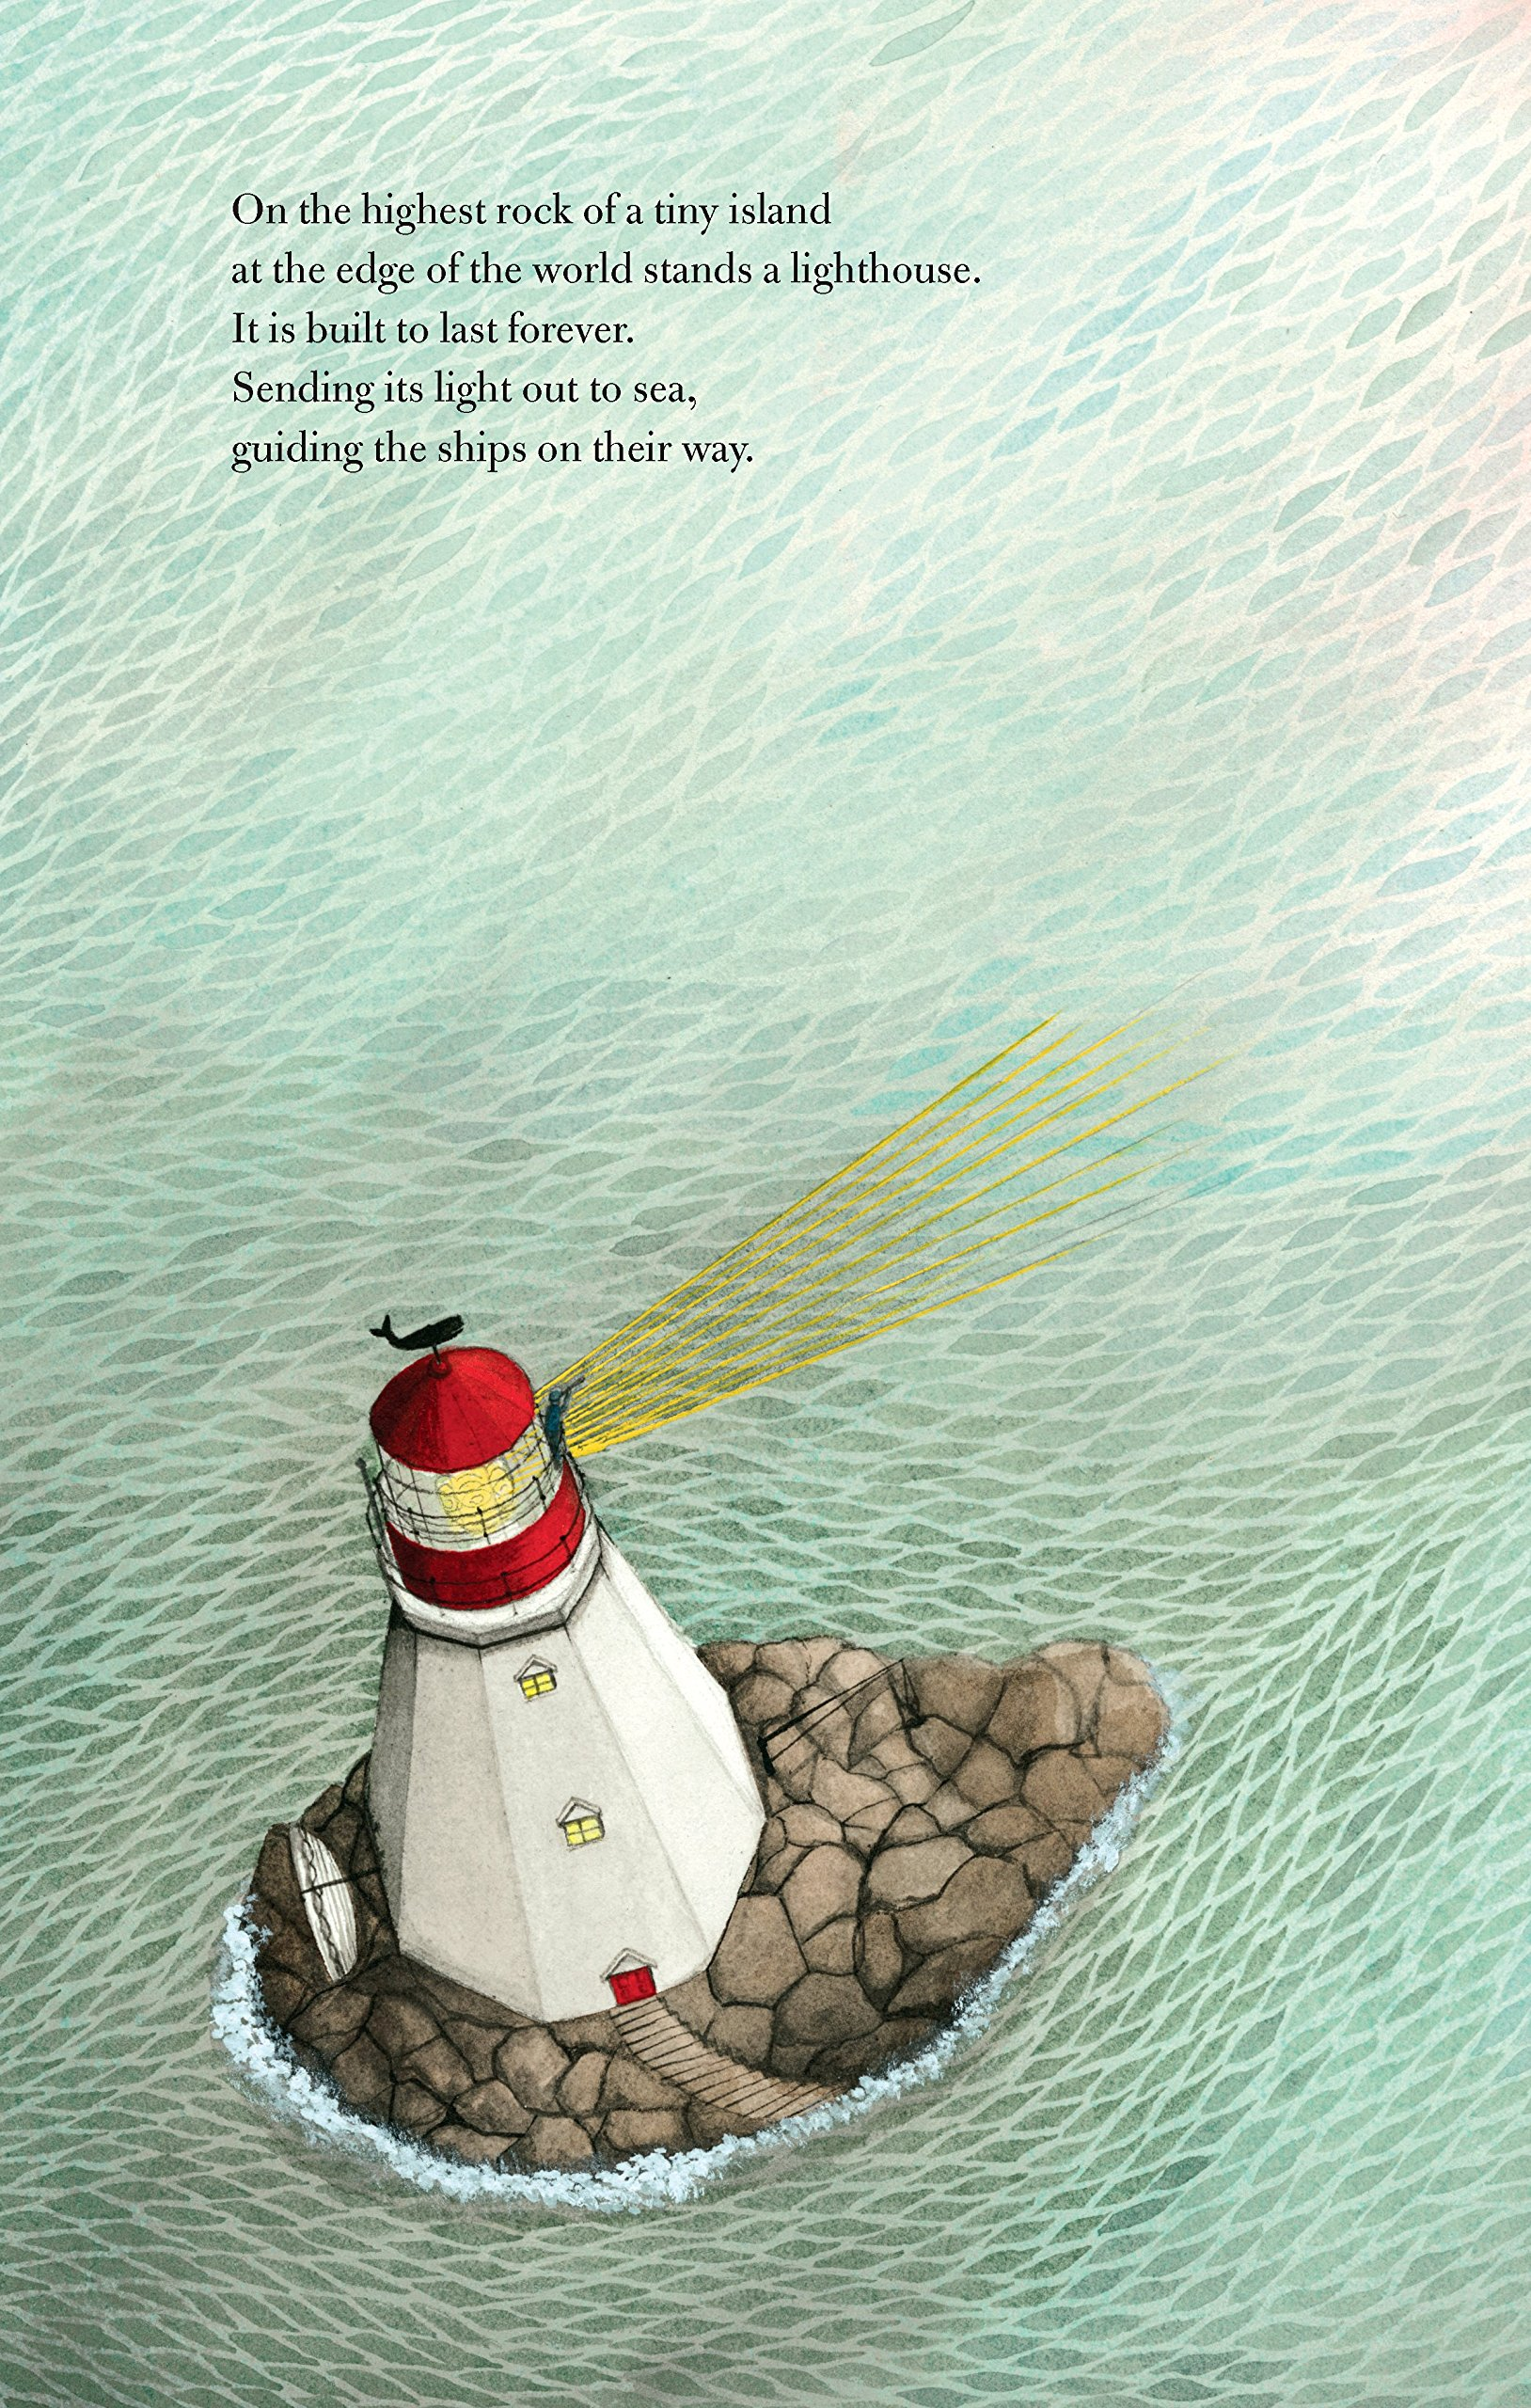 celebrate-picture-books-picture-book-review-hello-lighthouse-island